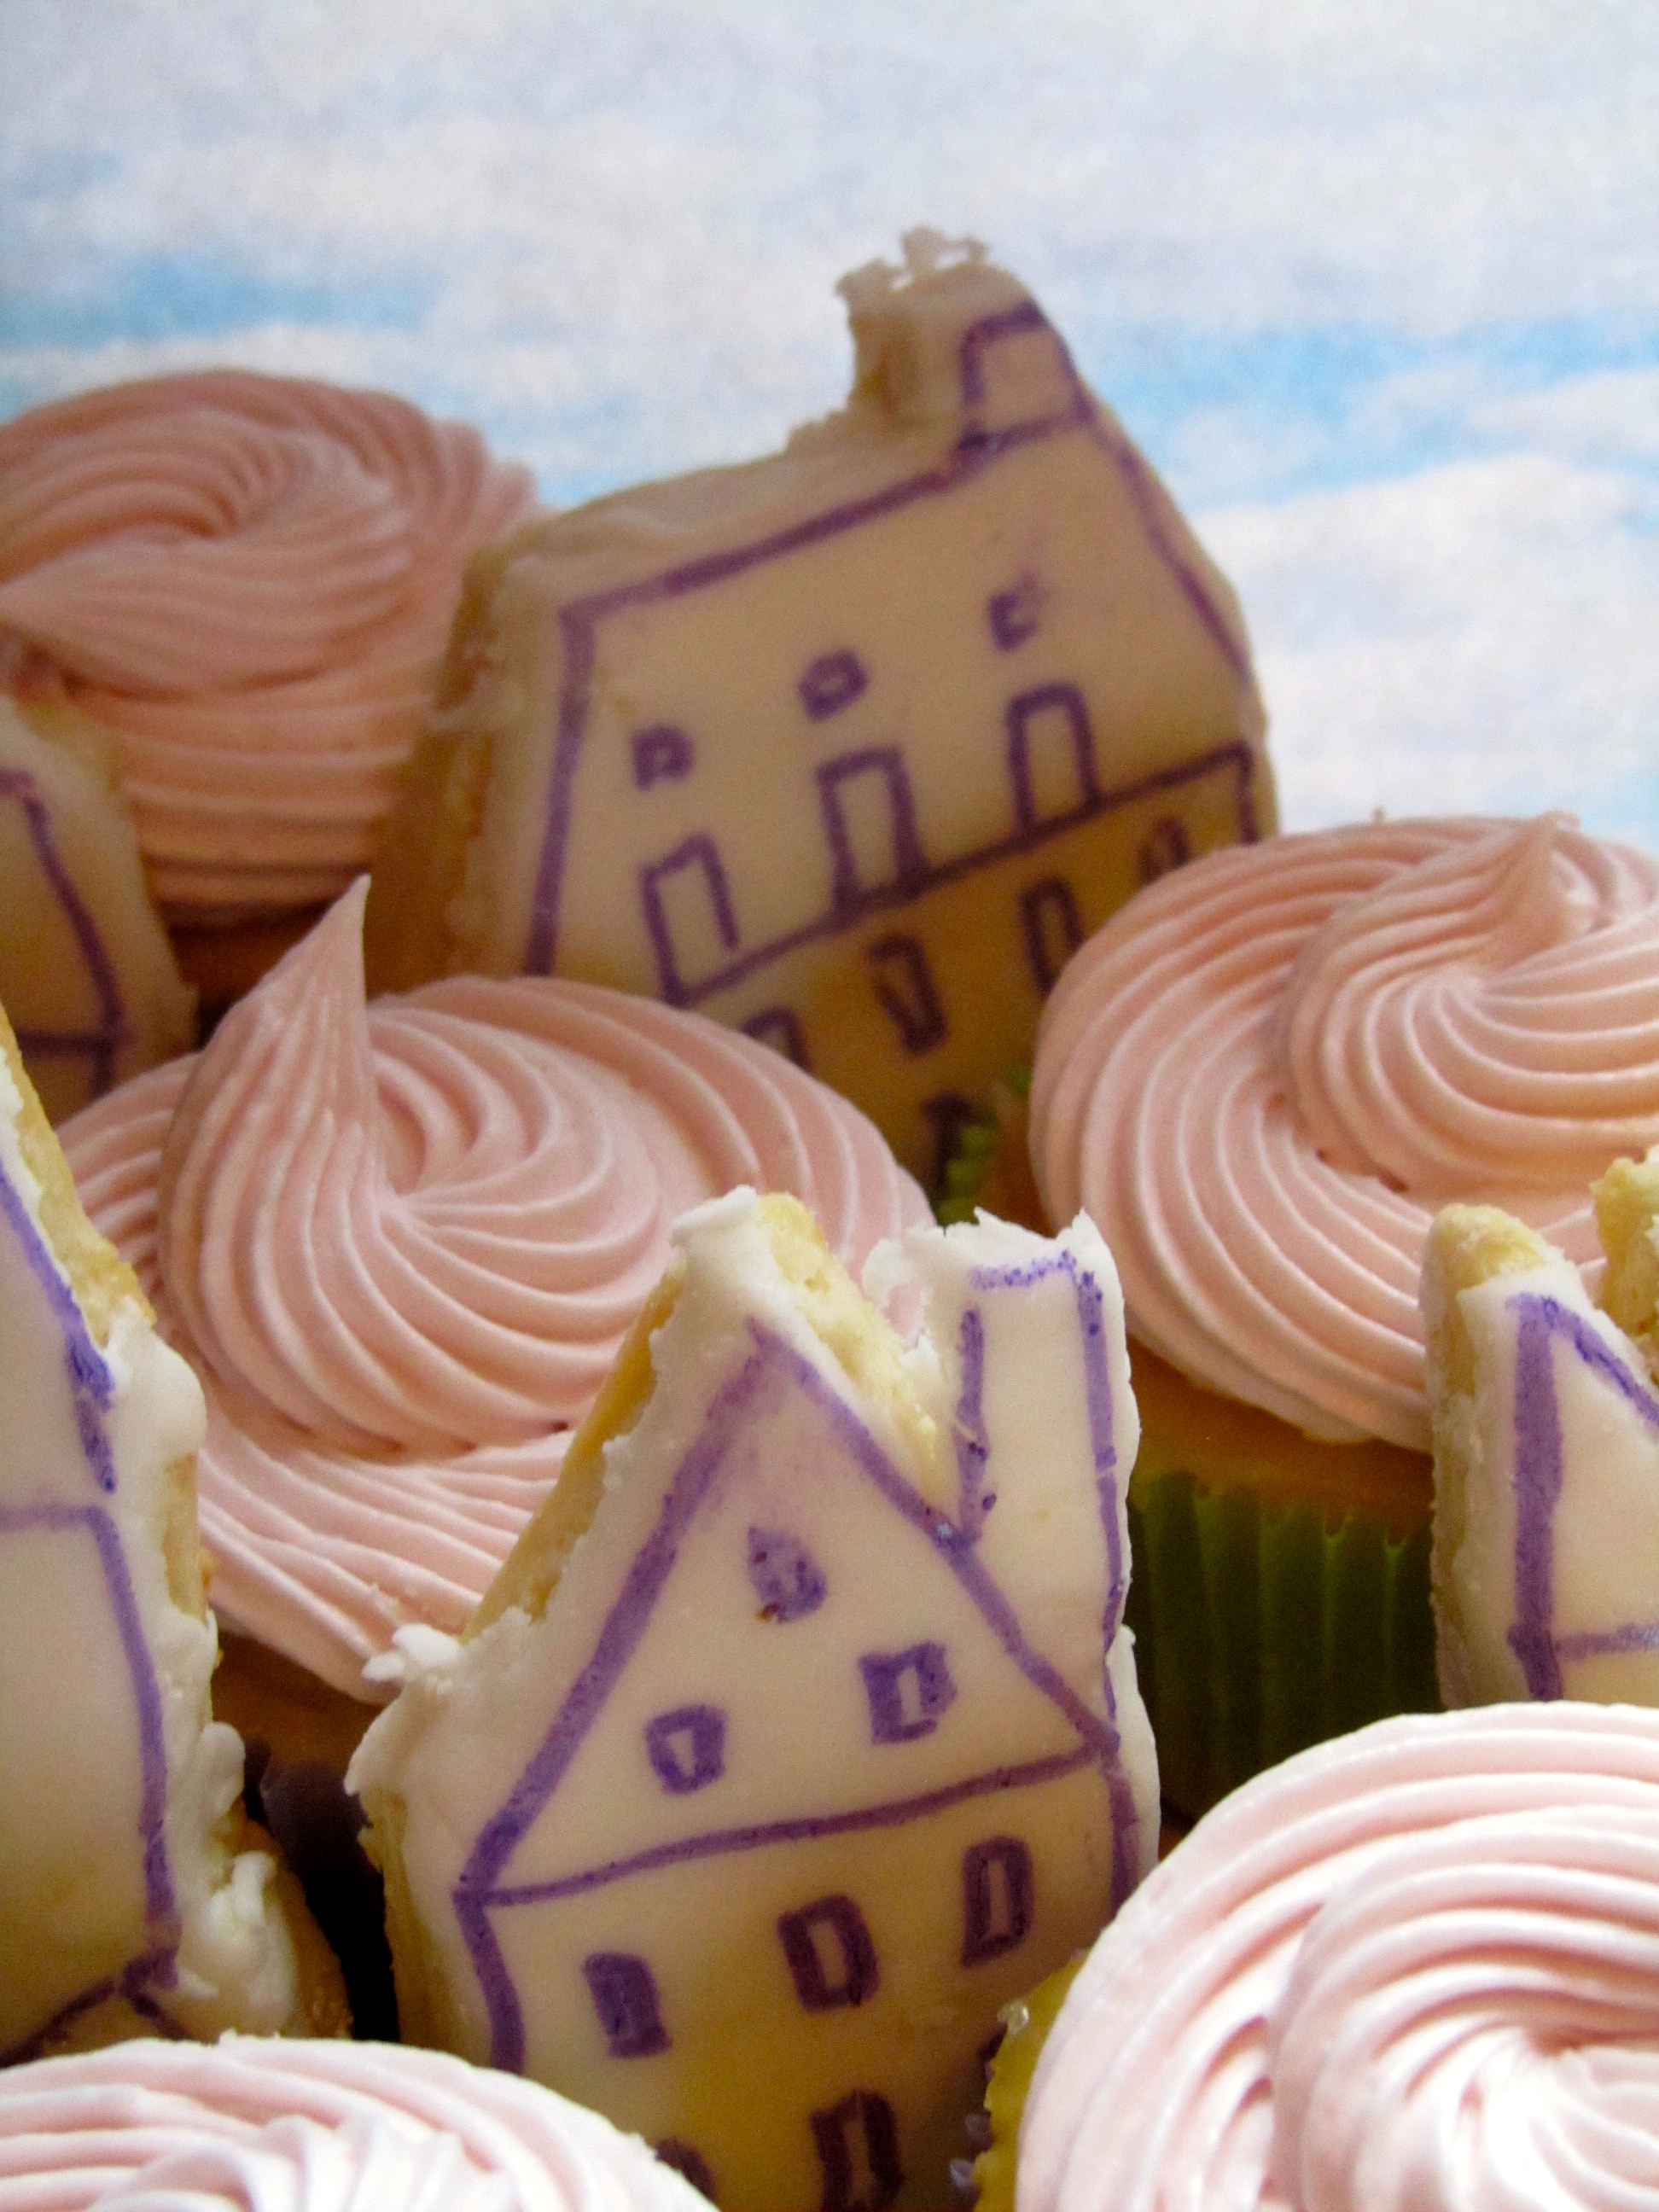 Lavender Lemon Cupcakes and Cookies Inspired by All the Light We